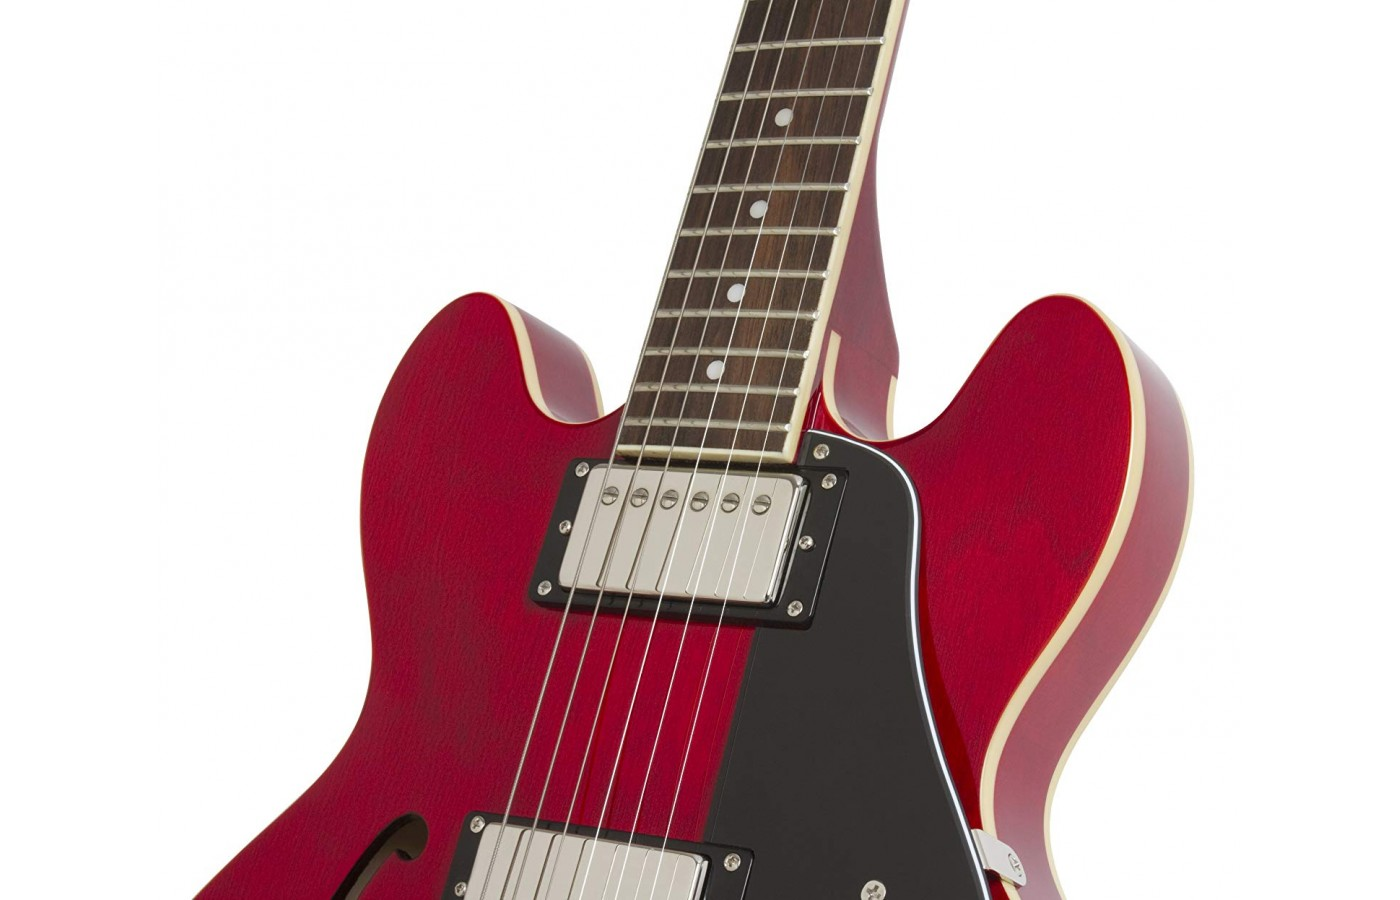 It has two '57 Classic Humbuckers in the neck and bridge along with chrome Gibson parts hardware.